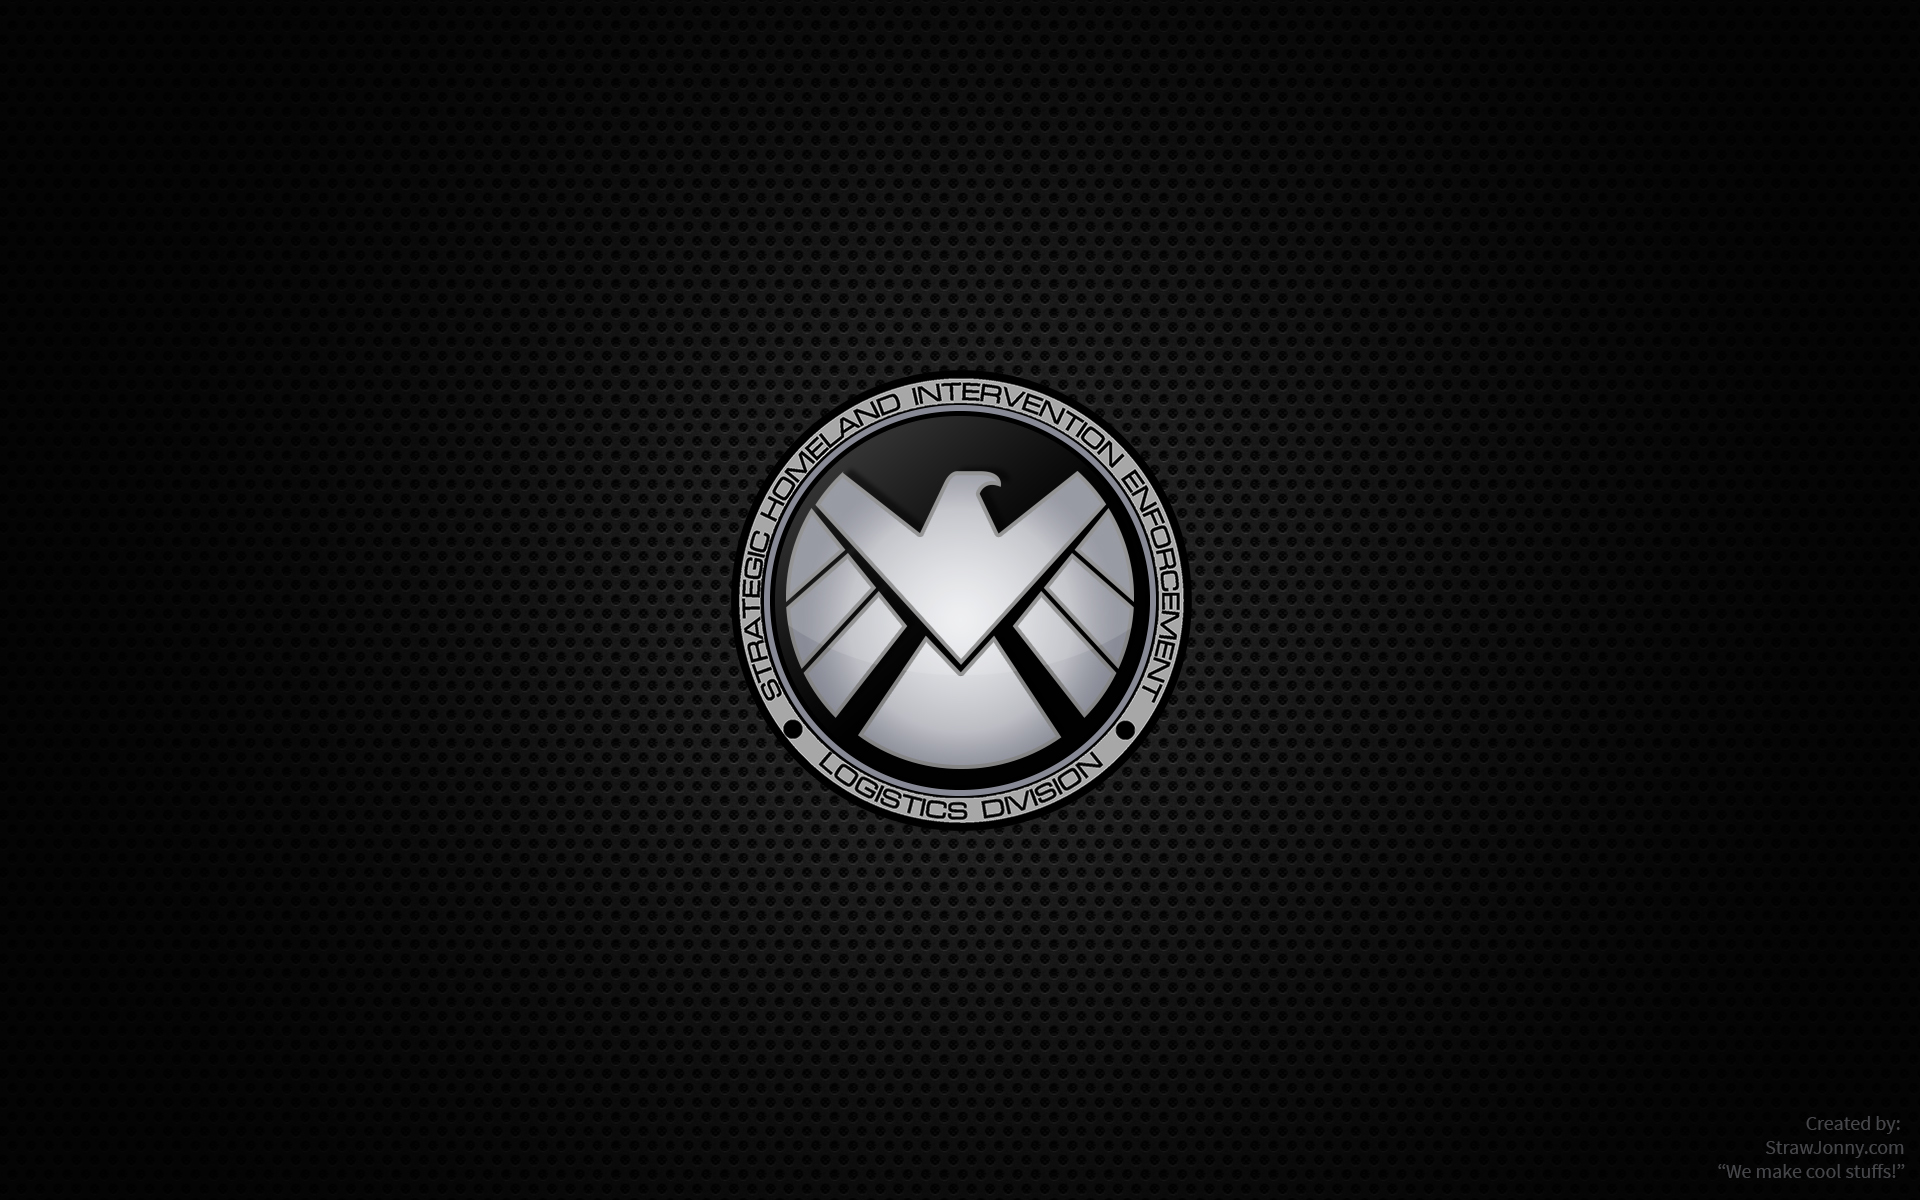 Agents Of Shield Wallpaper Images Pictures   Becuo 1920x1200